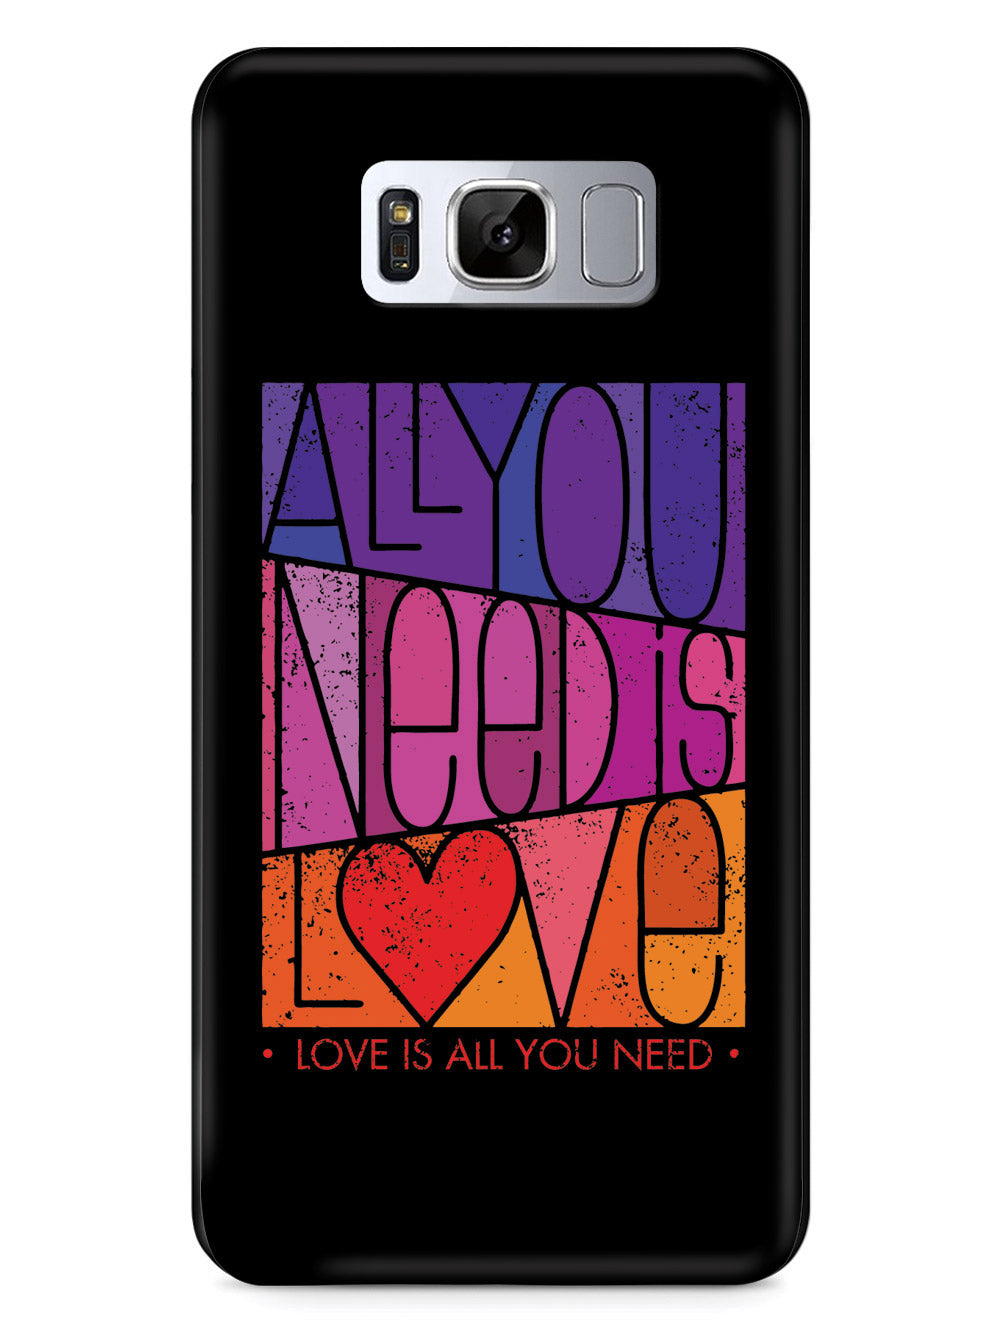 All You Need is LOVE - Block Script - Black Case